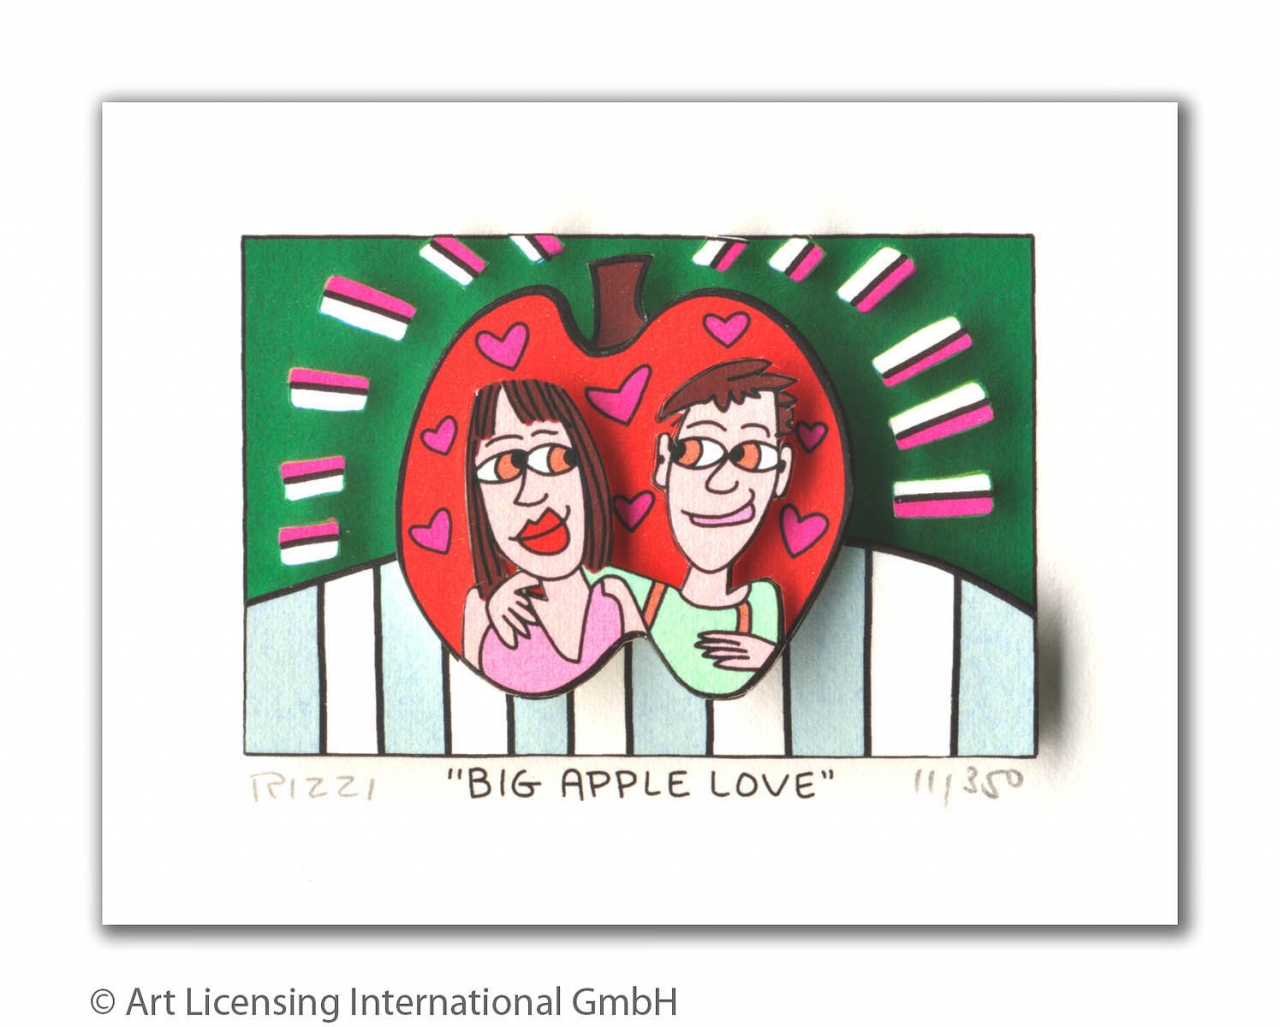 Big Apple Love